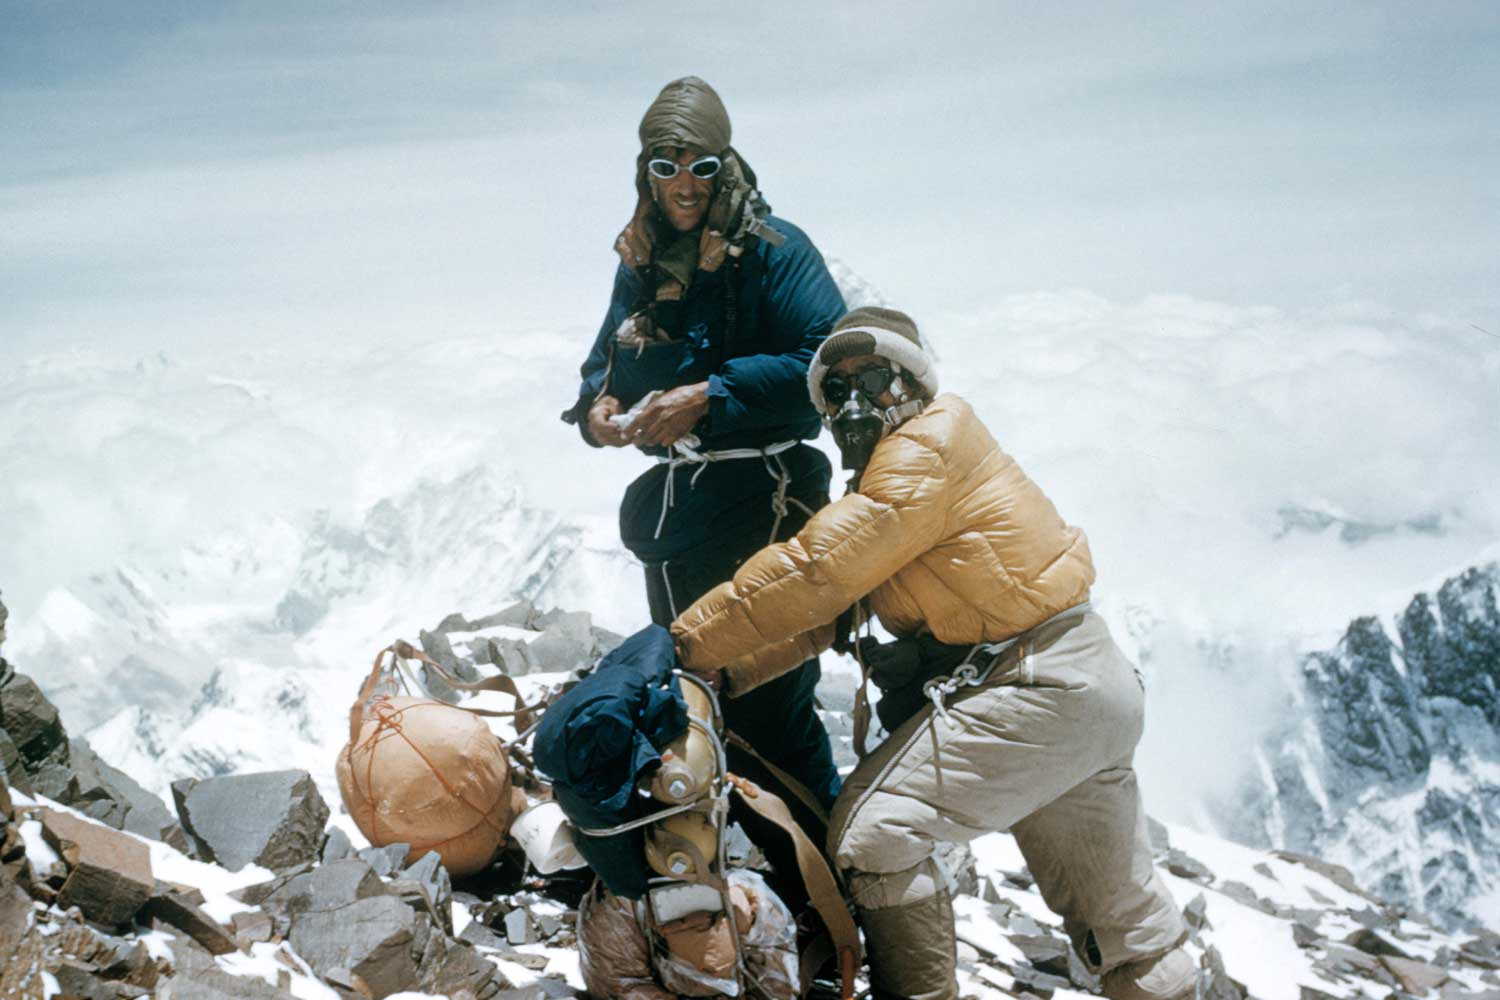 Sir Edmund Hillary and Tenzing Norgay climbing Mount Everest in 1953